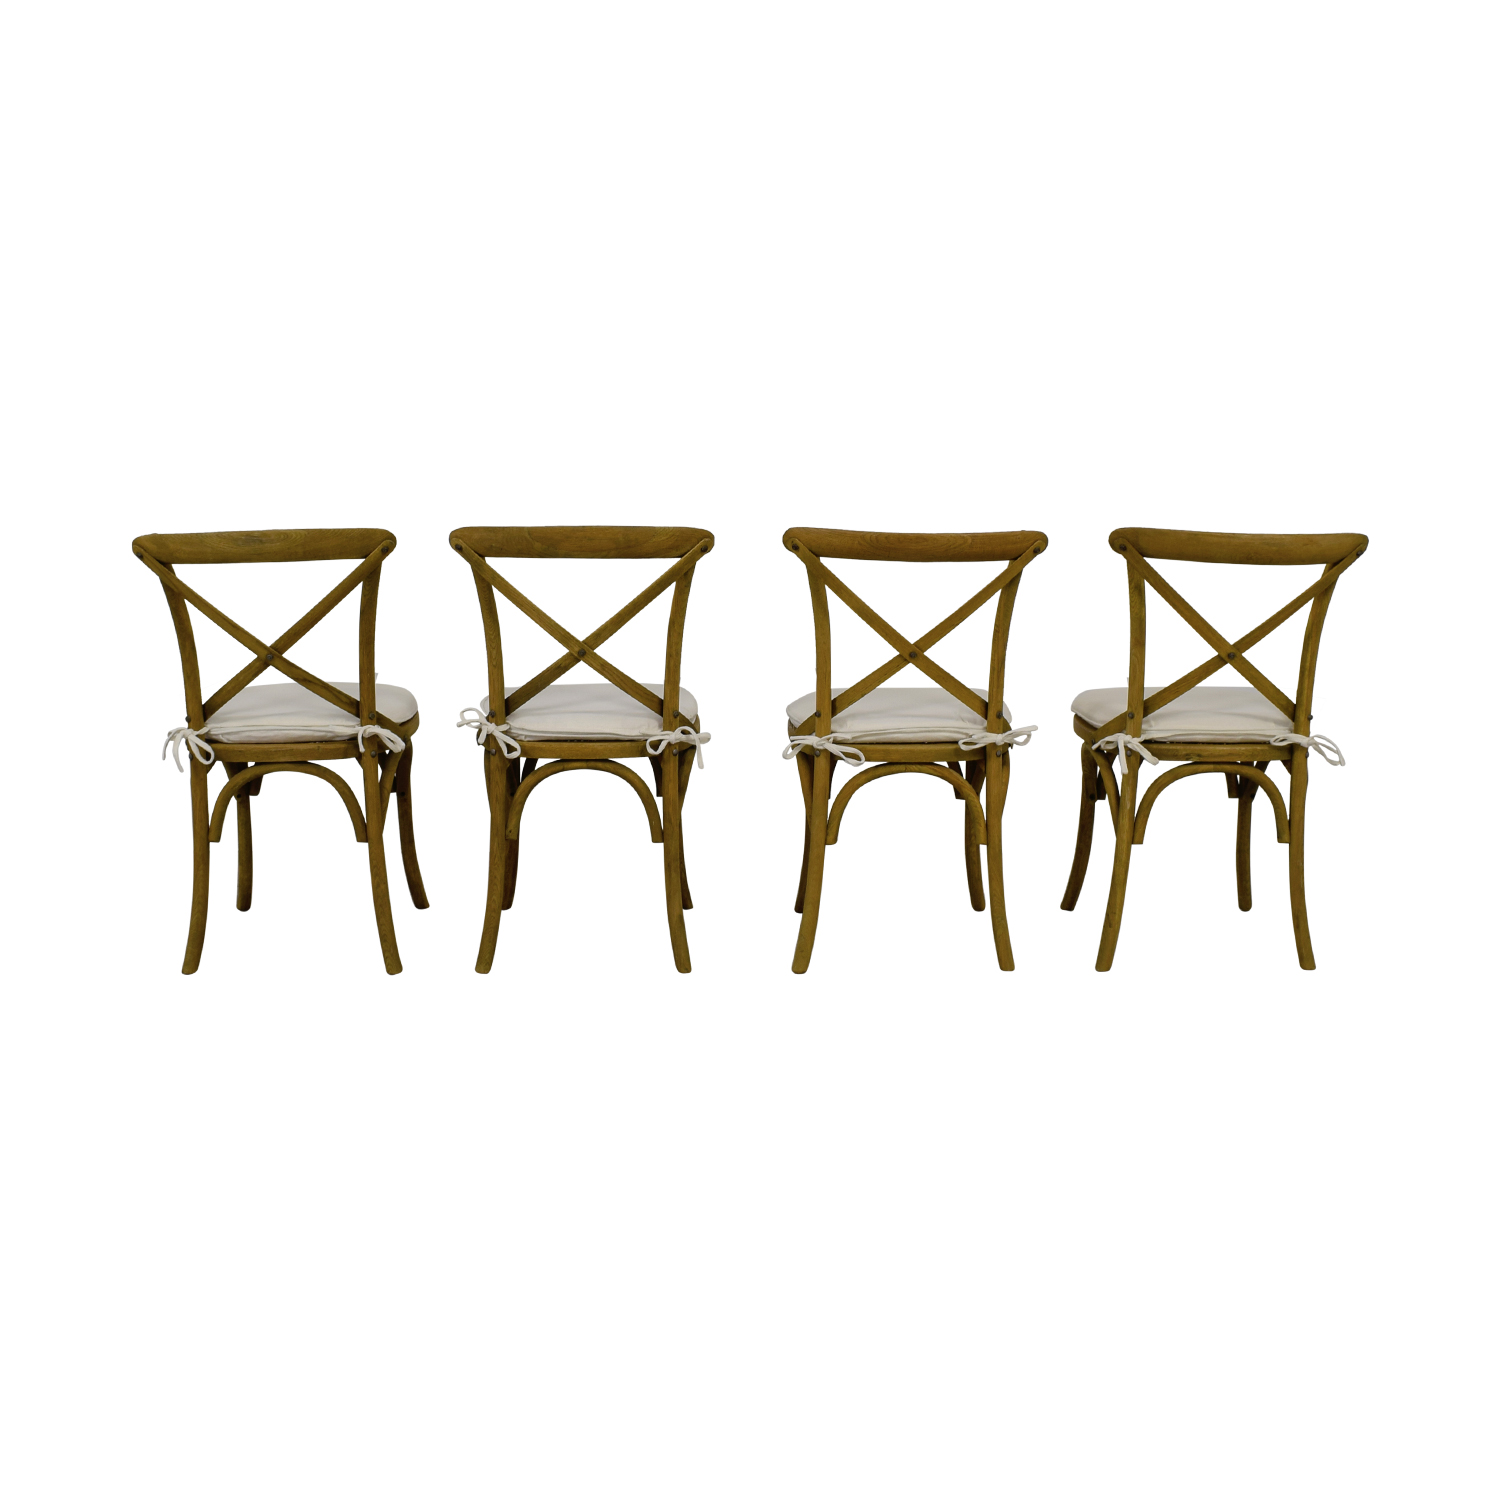 Restoration Hardware Restoration Hardware Madeleine Chairs with Cushion Beige